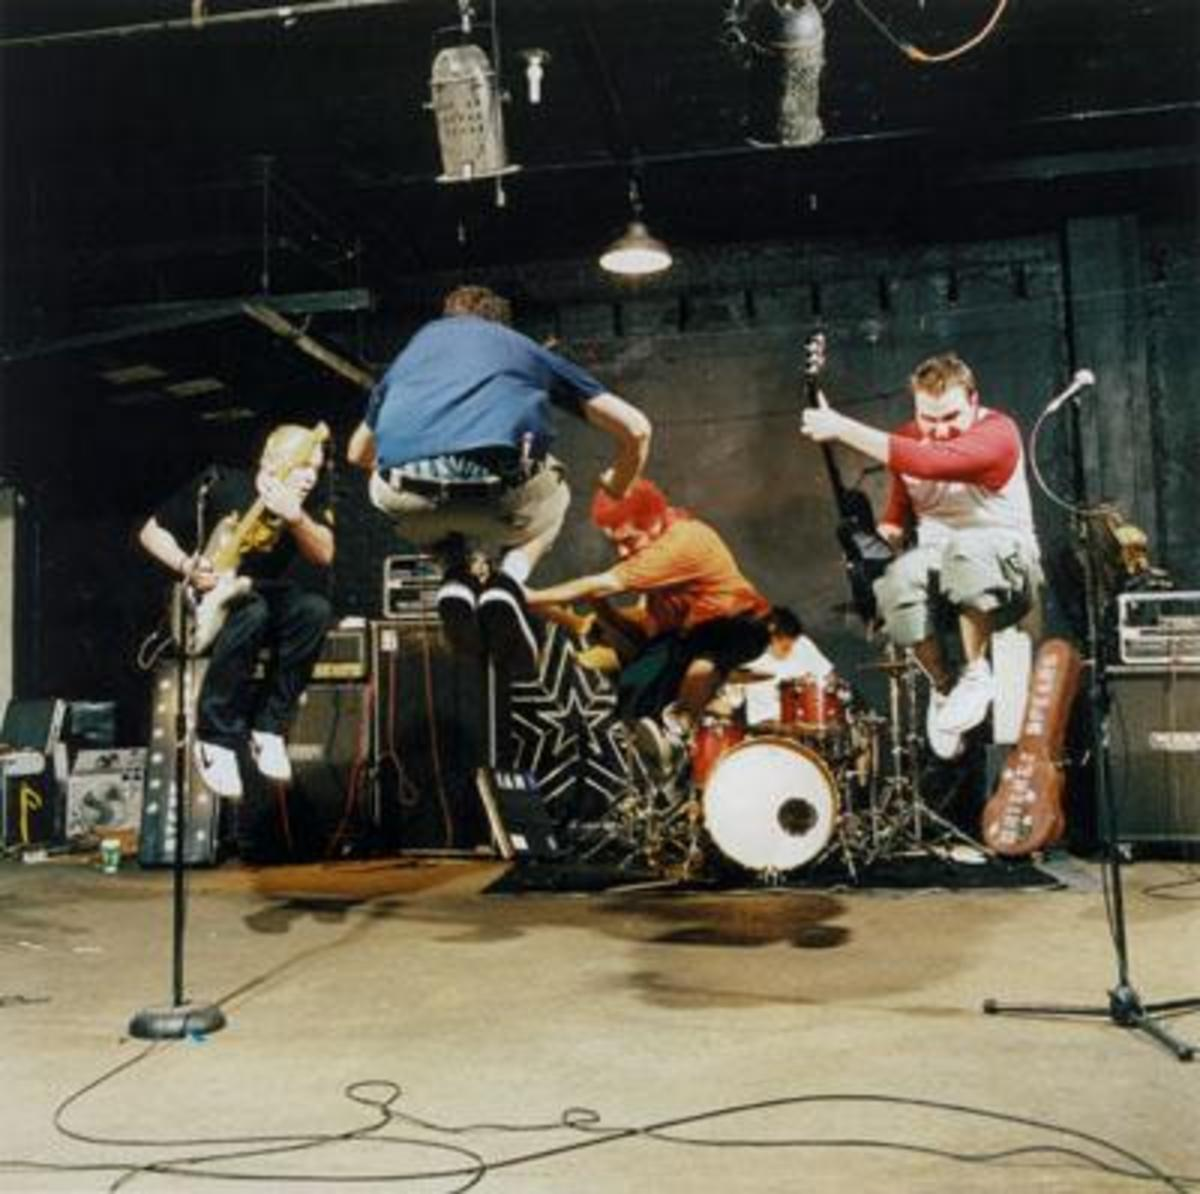 New Found Glory, a popular pop-punk band.